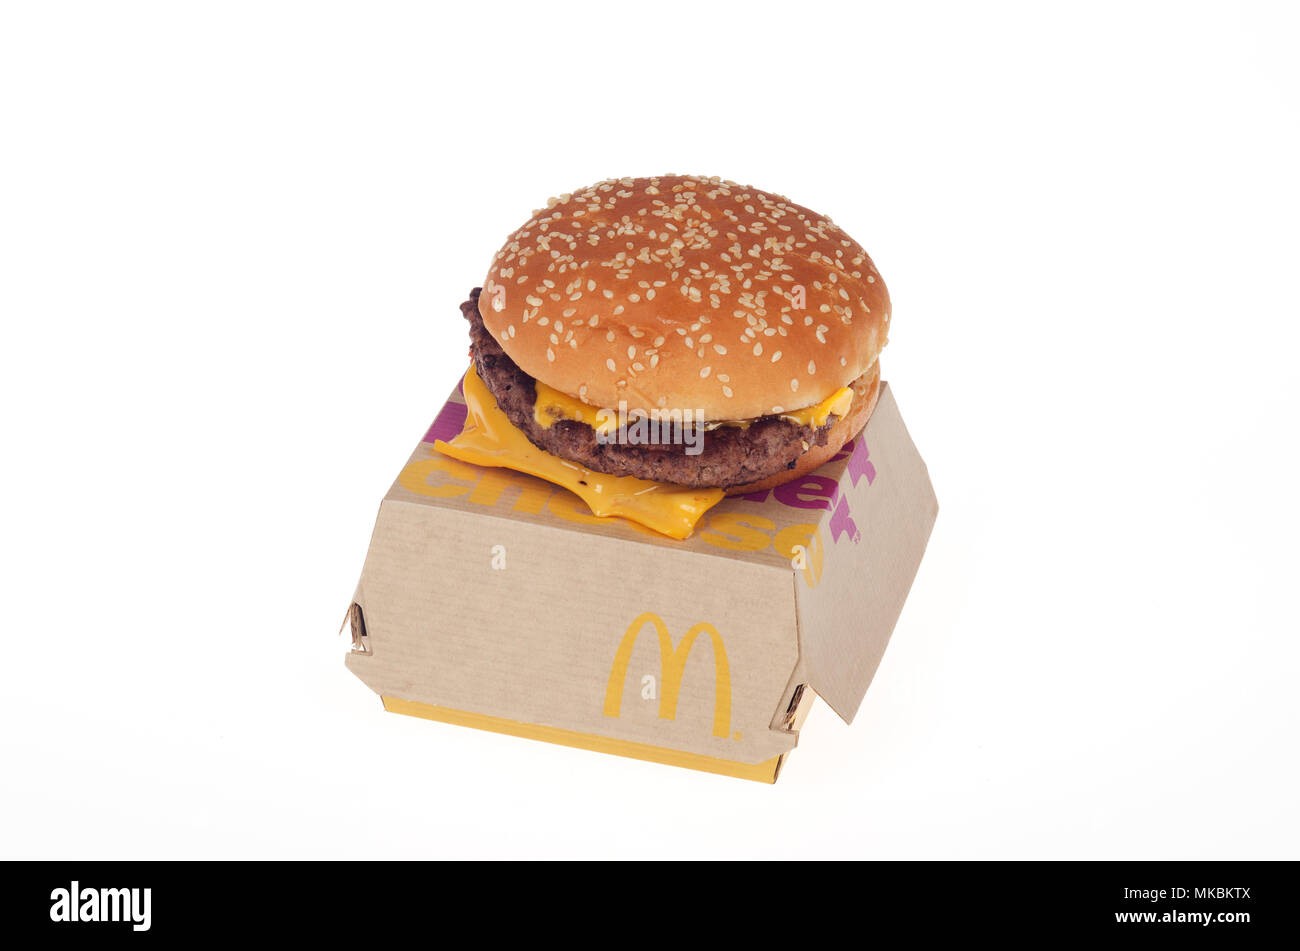 McDonald's new fresh beef cooked when ordered quater pounder with cheese. The never frozen burger just rolled out nationally in USA in May 2018. - Stock Image